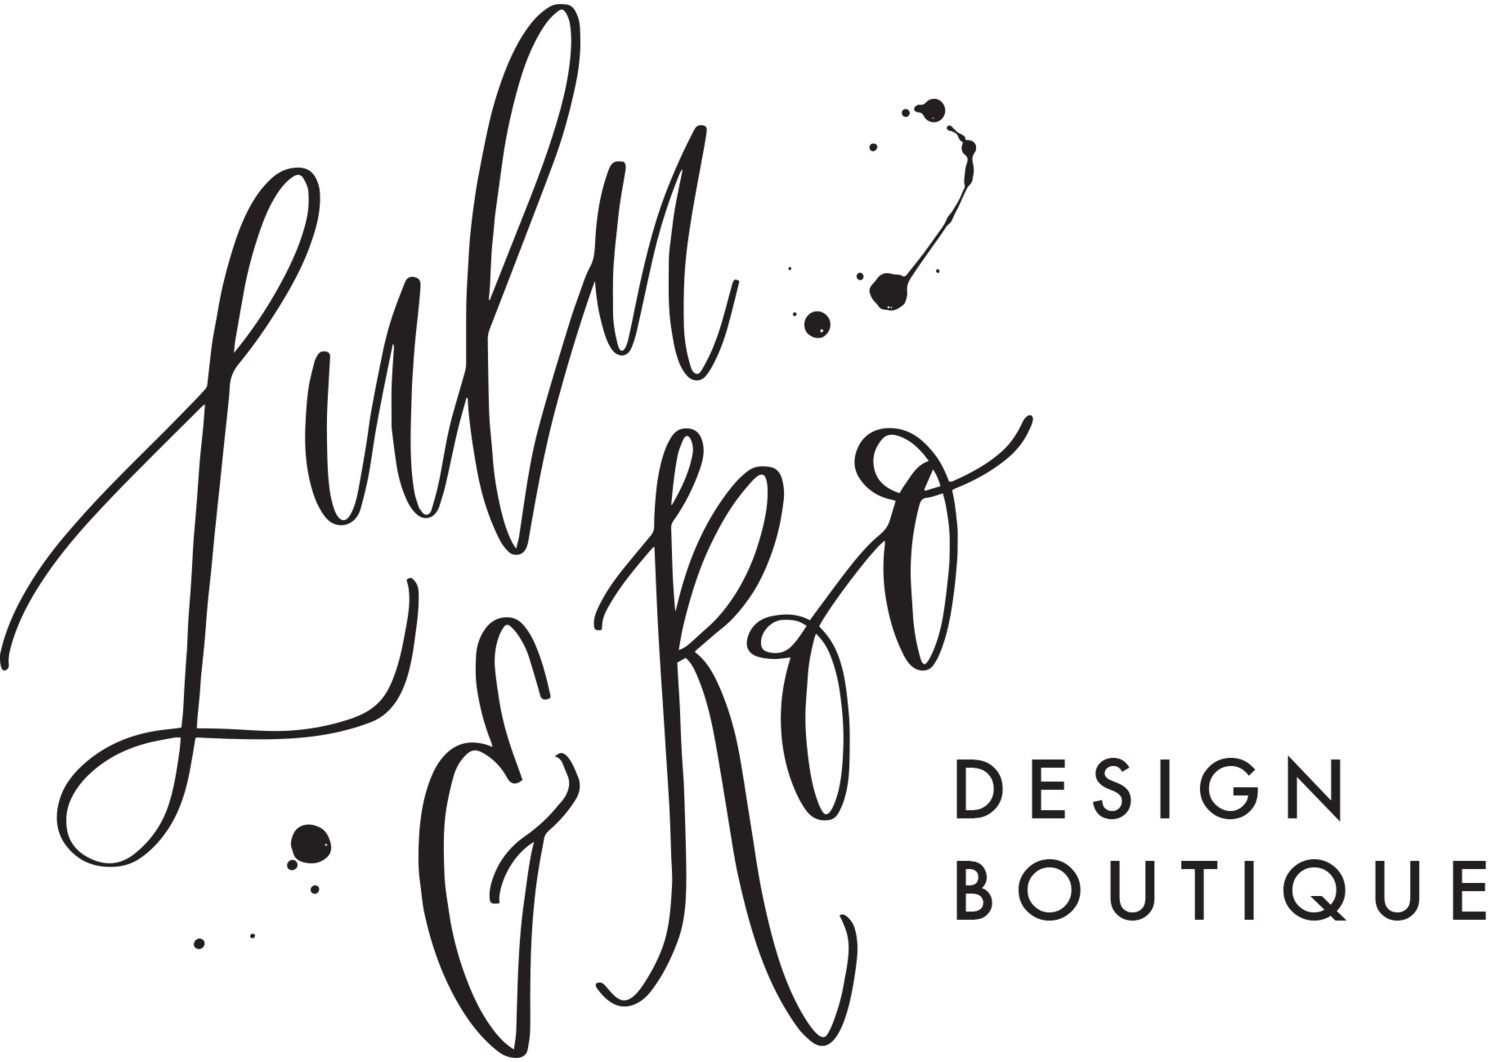 Creative Agency Portfolio — Lulu & Roo Design Boutique